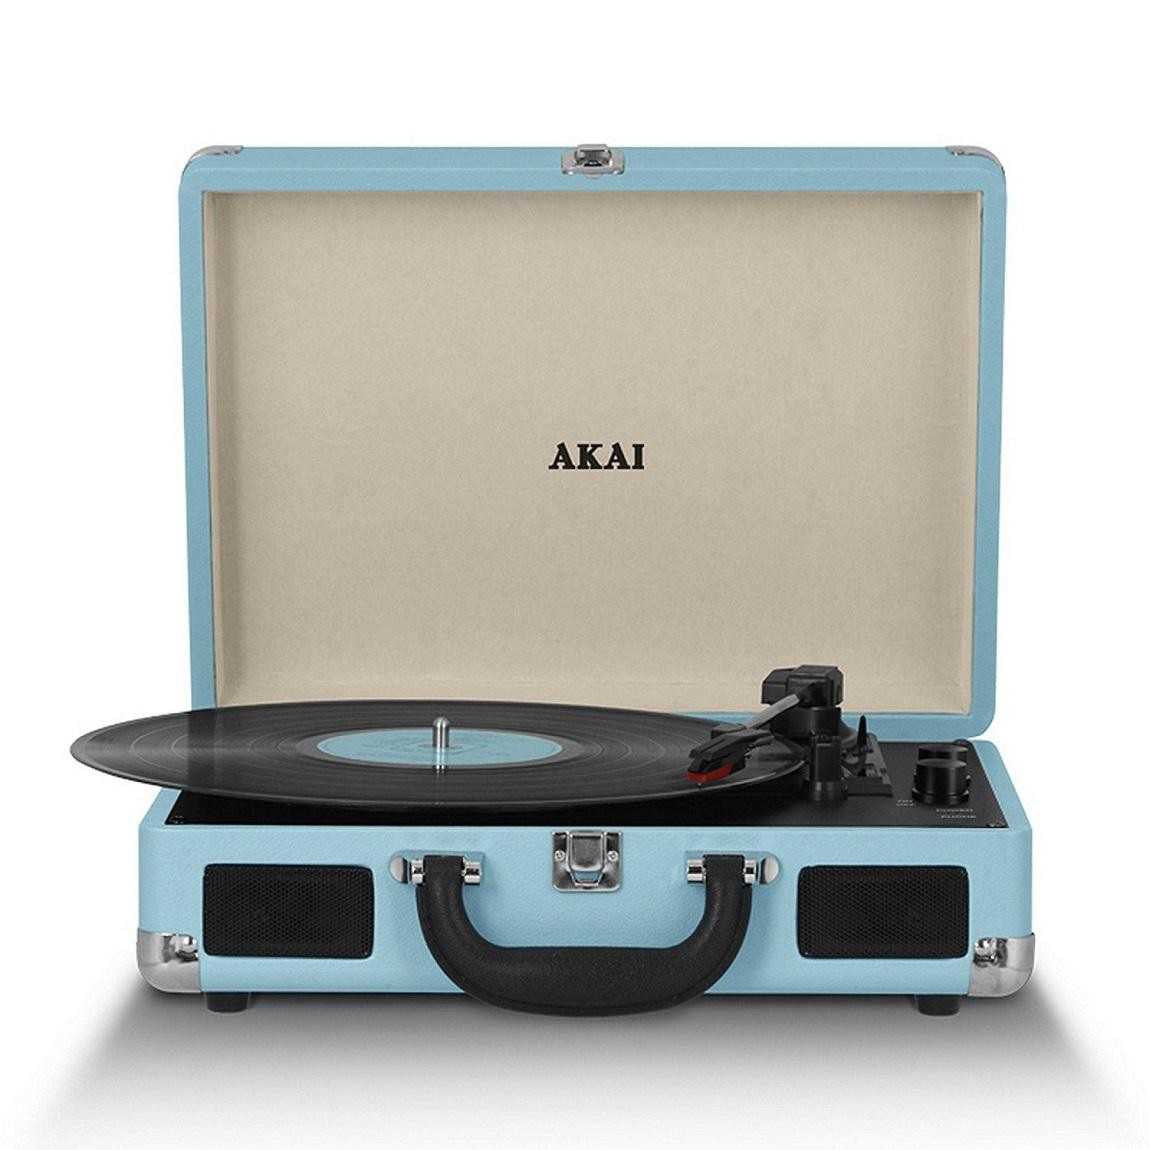 Akai-A60011NB-turntable-blue-front.jpg